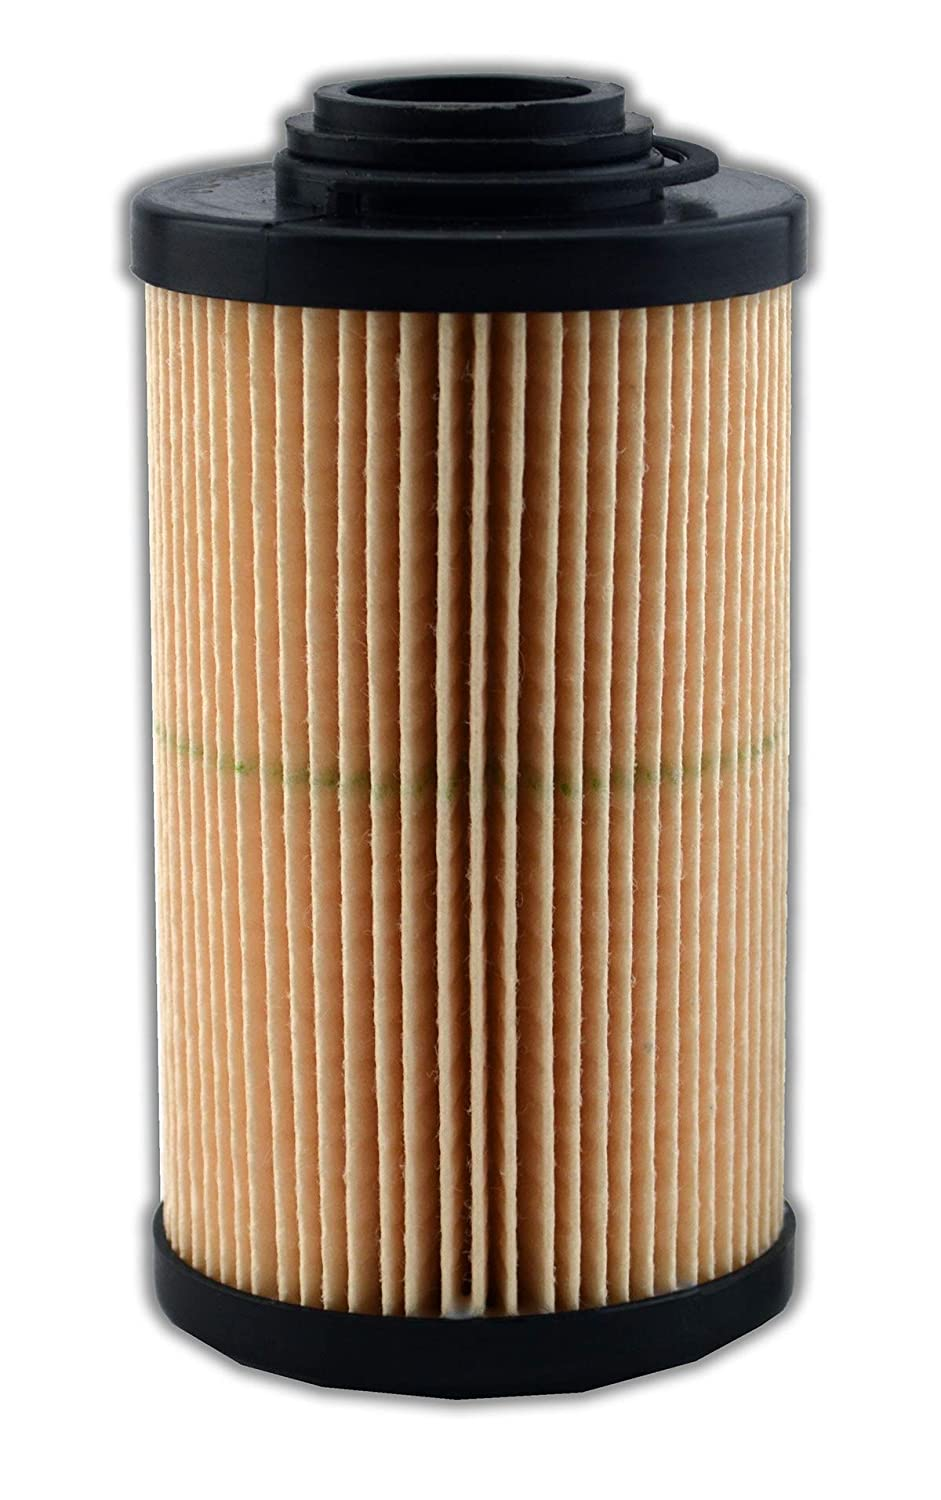 STAUFF RTE25D10B Heavy Duty Replacement Hydraulic Filter Element from Big Filter Pack of 2 Filters